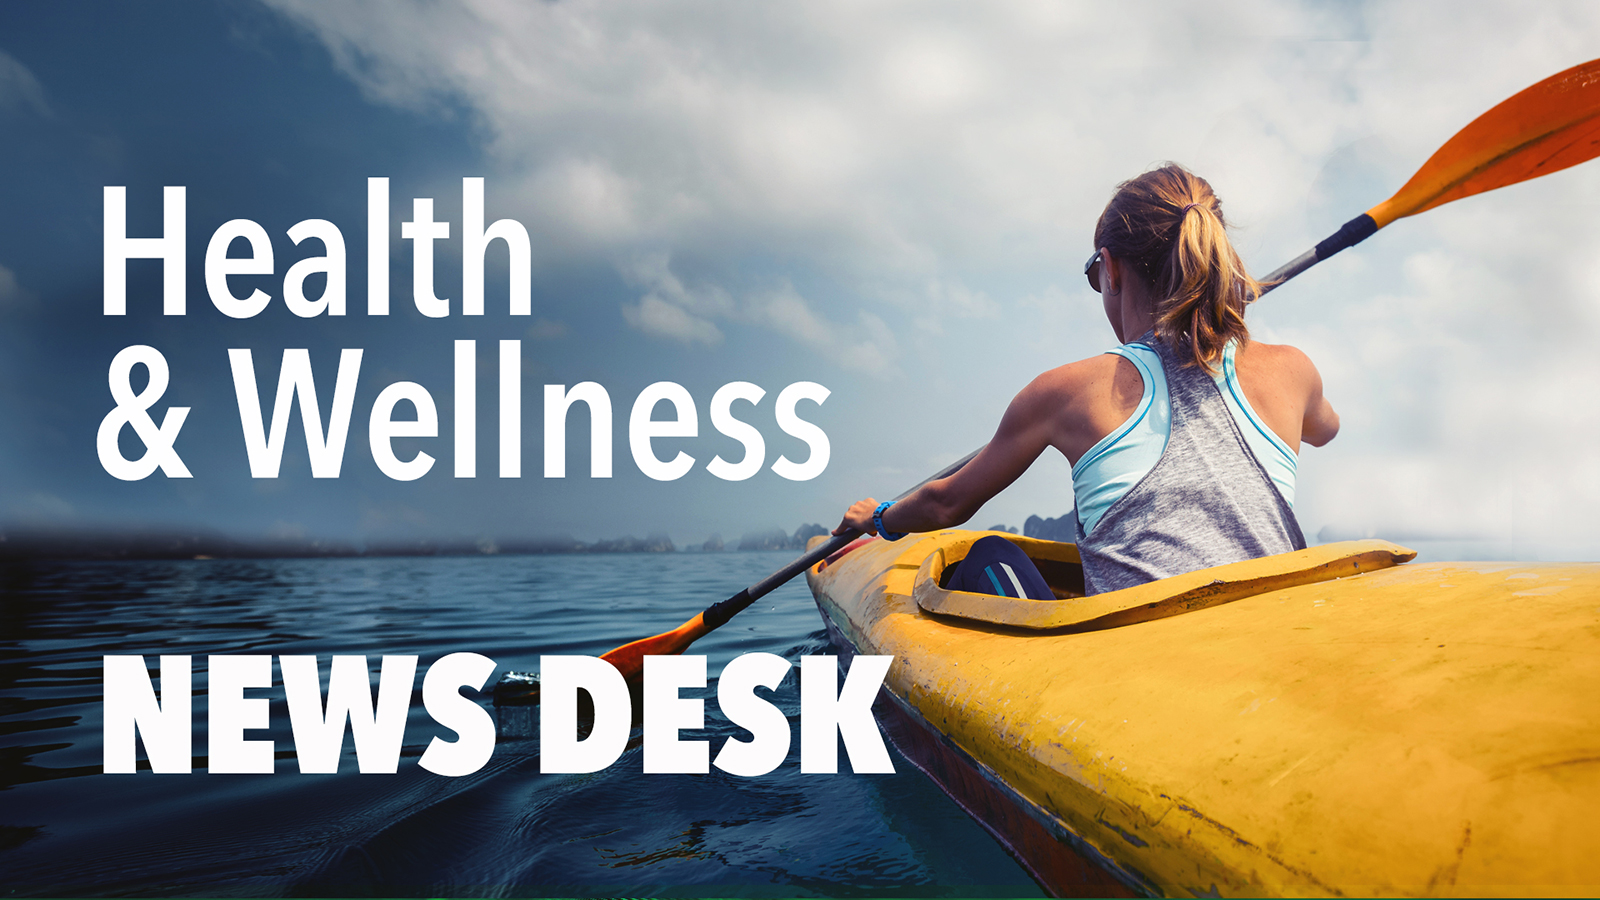 <b>Health &amp; Wellness News Desk</b>